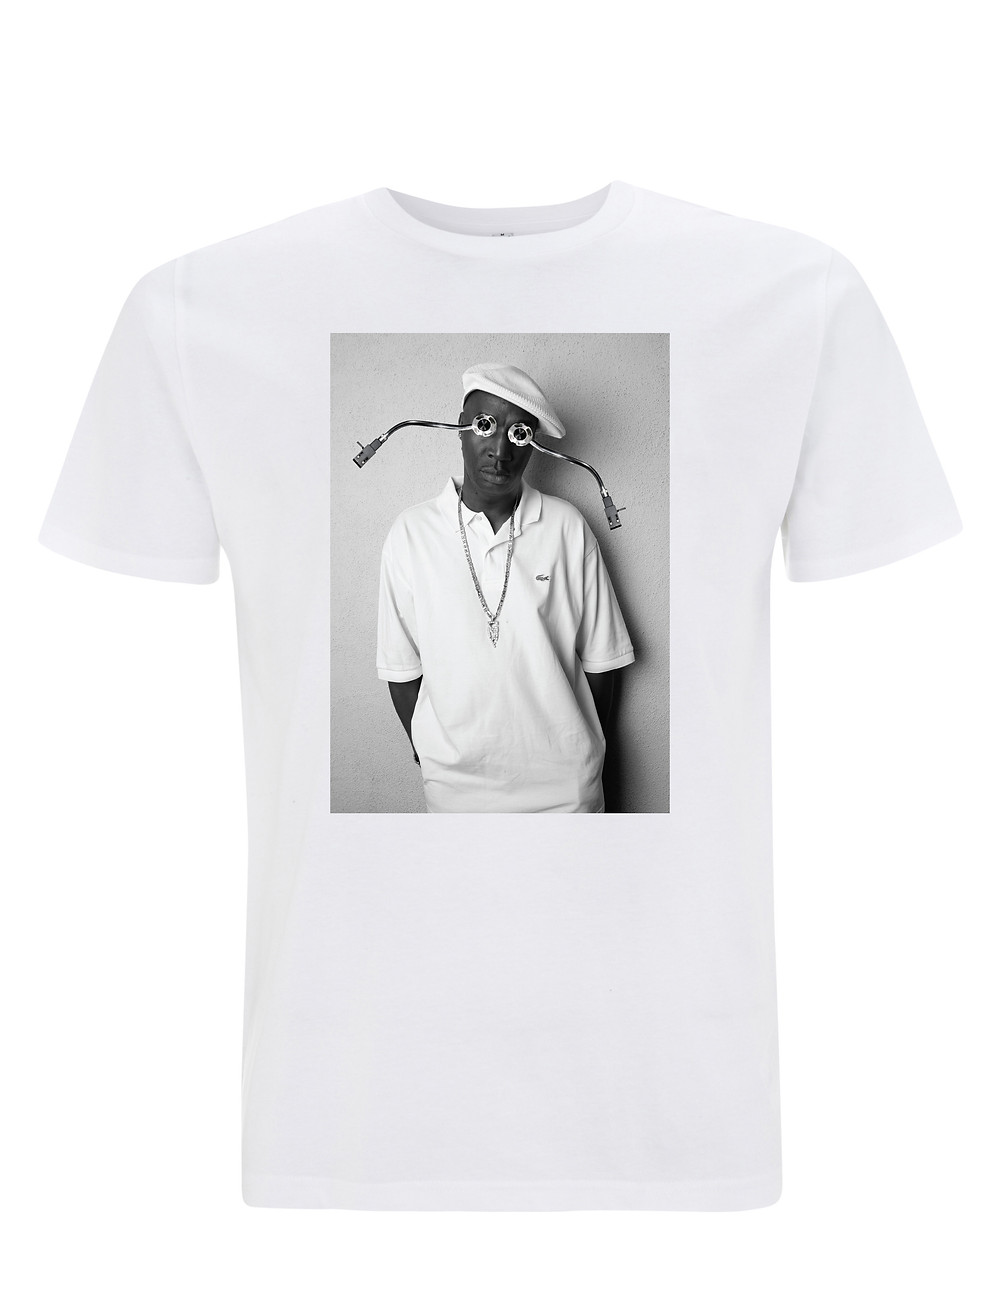 Grand Master Flash New T-shirt coming soon